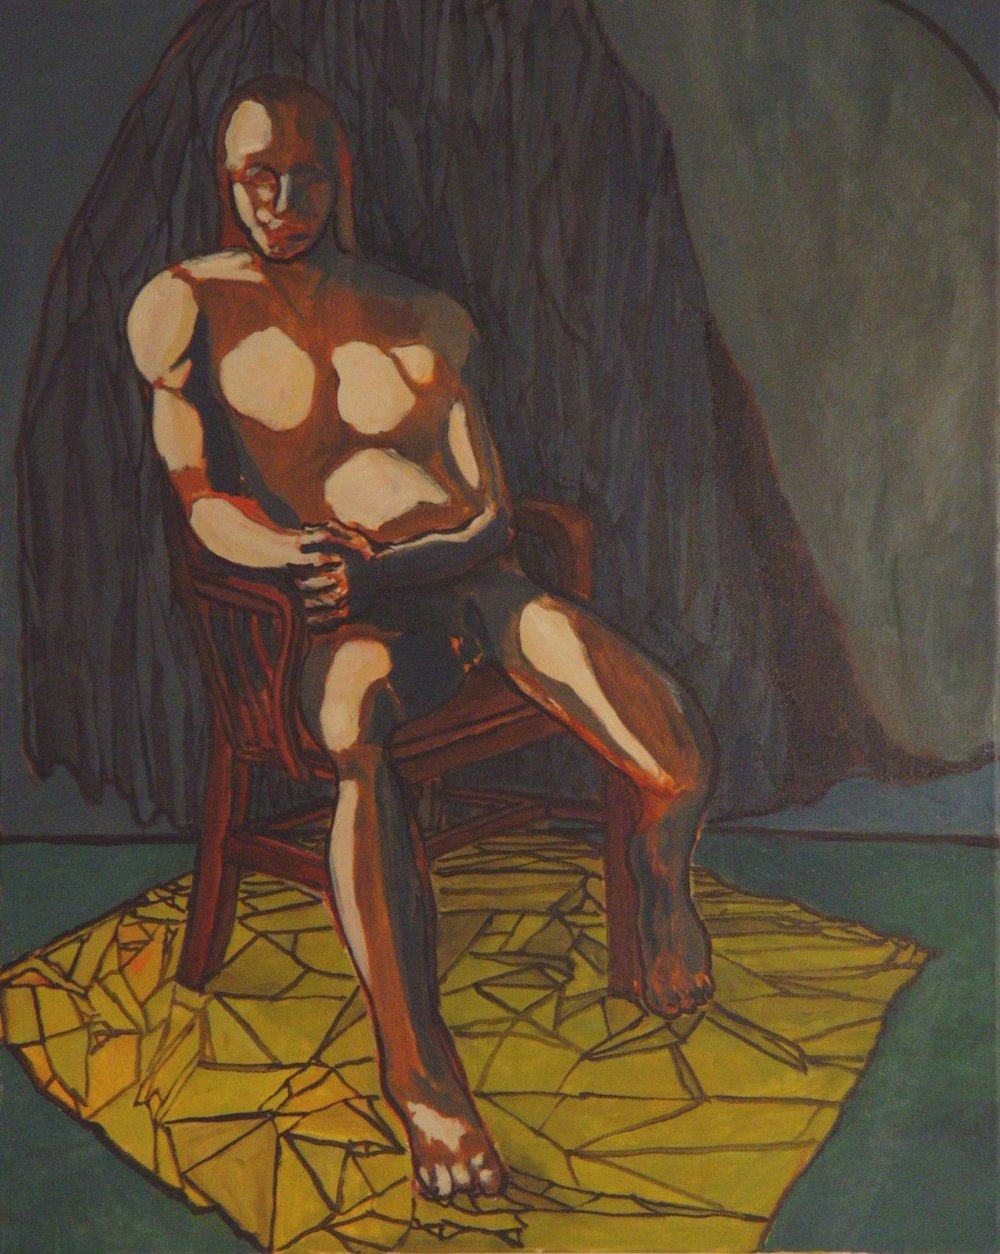 Copy of Nude Man Seated